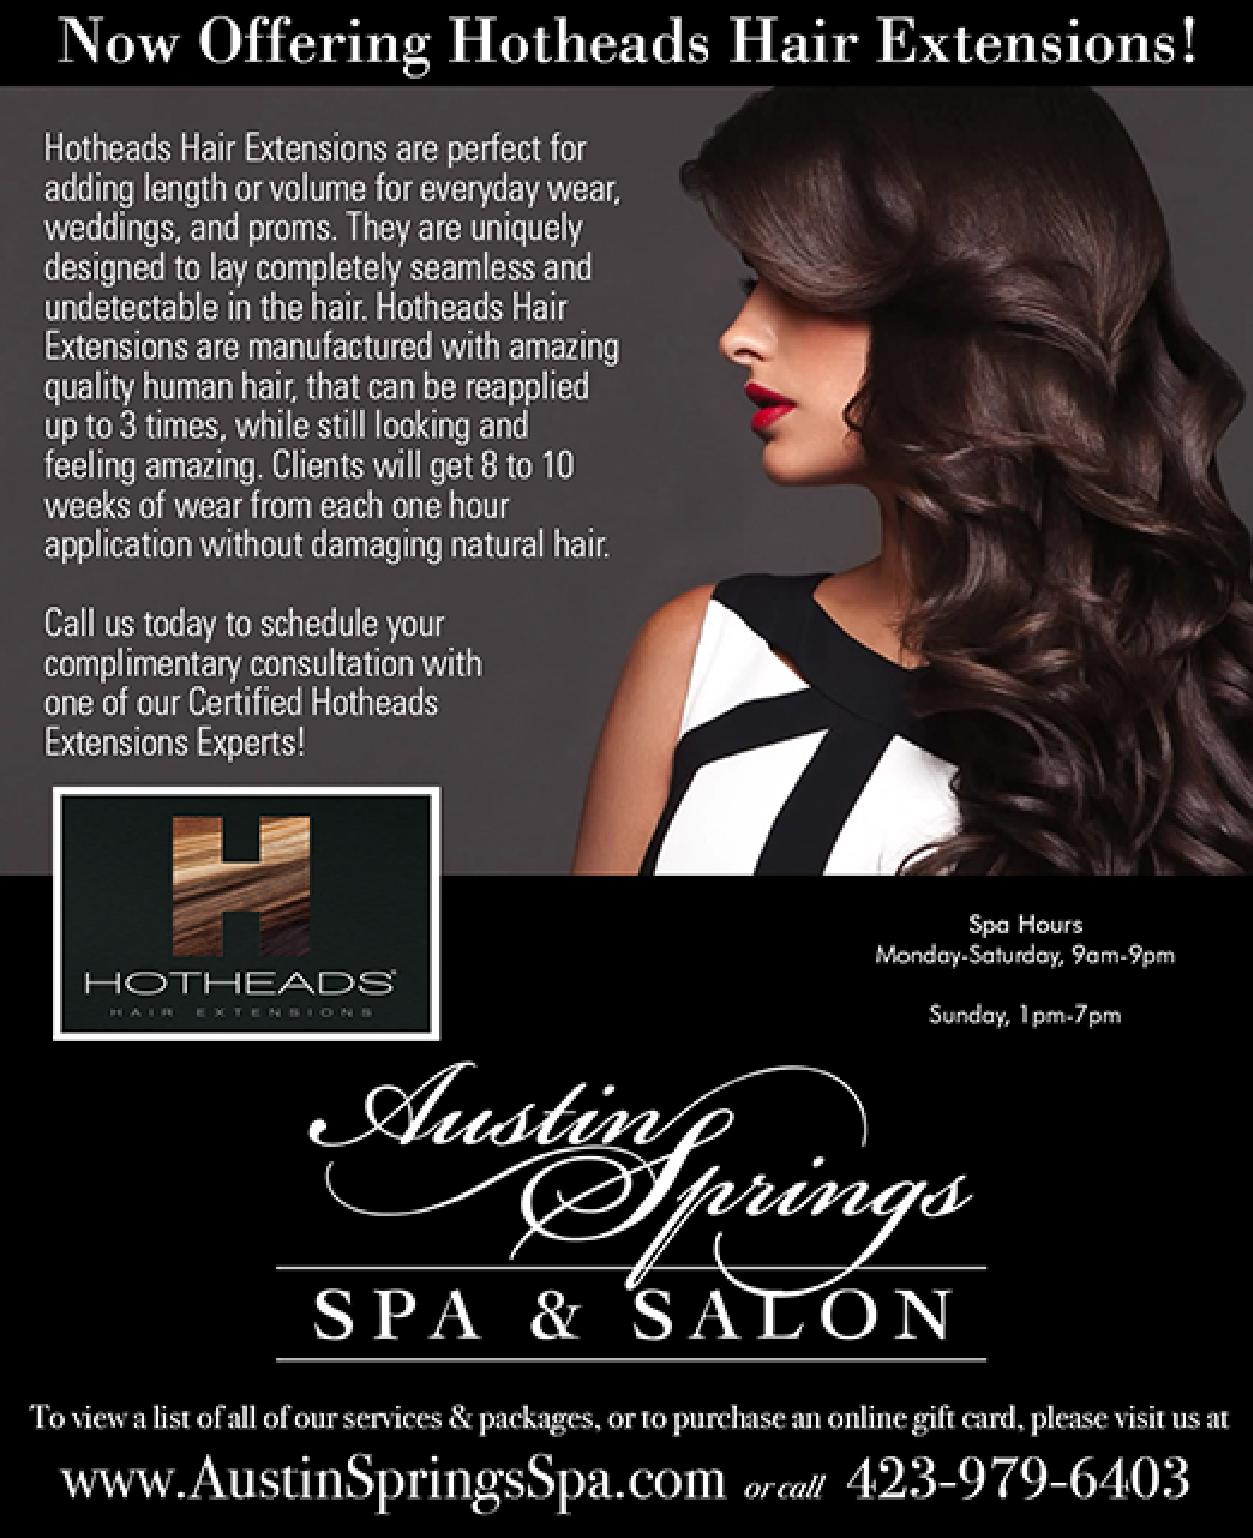 Introducing Hotheads Hair Extensions Austin Springs Spa